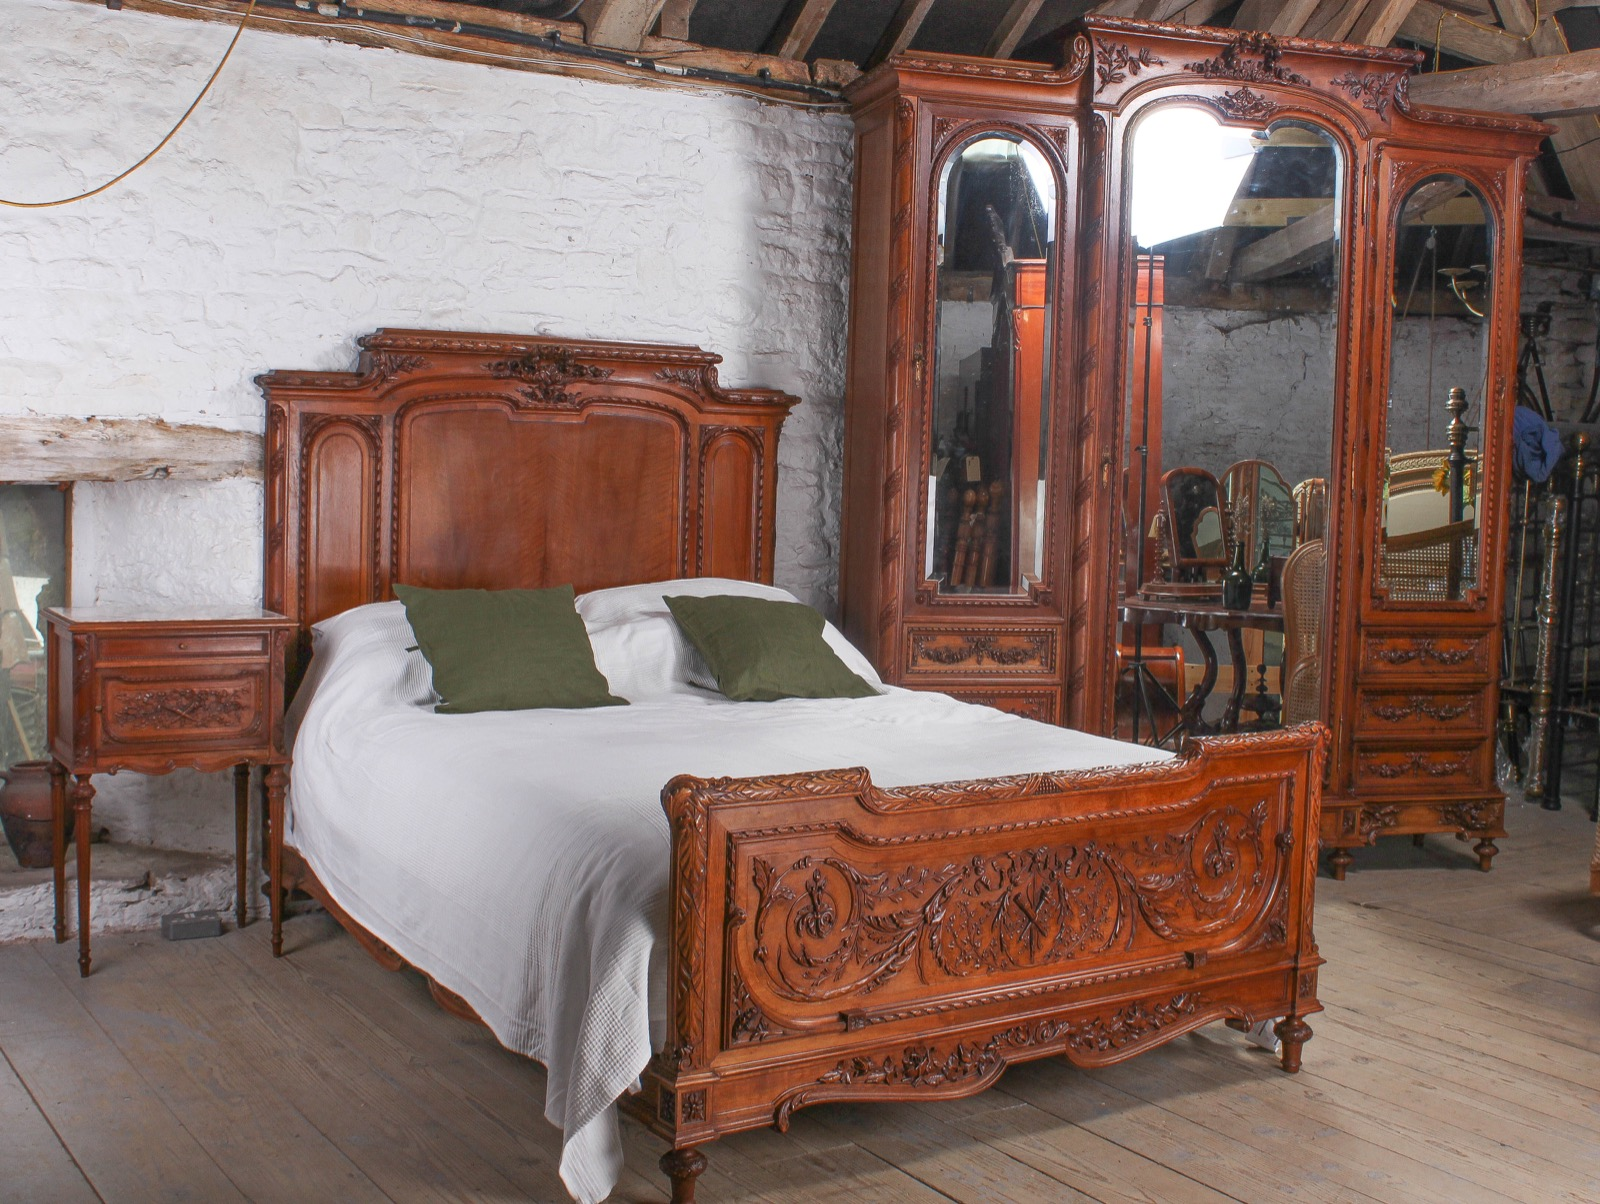 The Most Beautiful French Carved Solid Walnut Bedroom Suite With King Size Bed La227365 Loveantiques Com